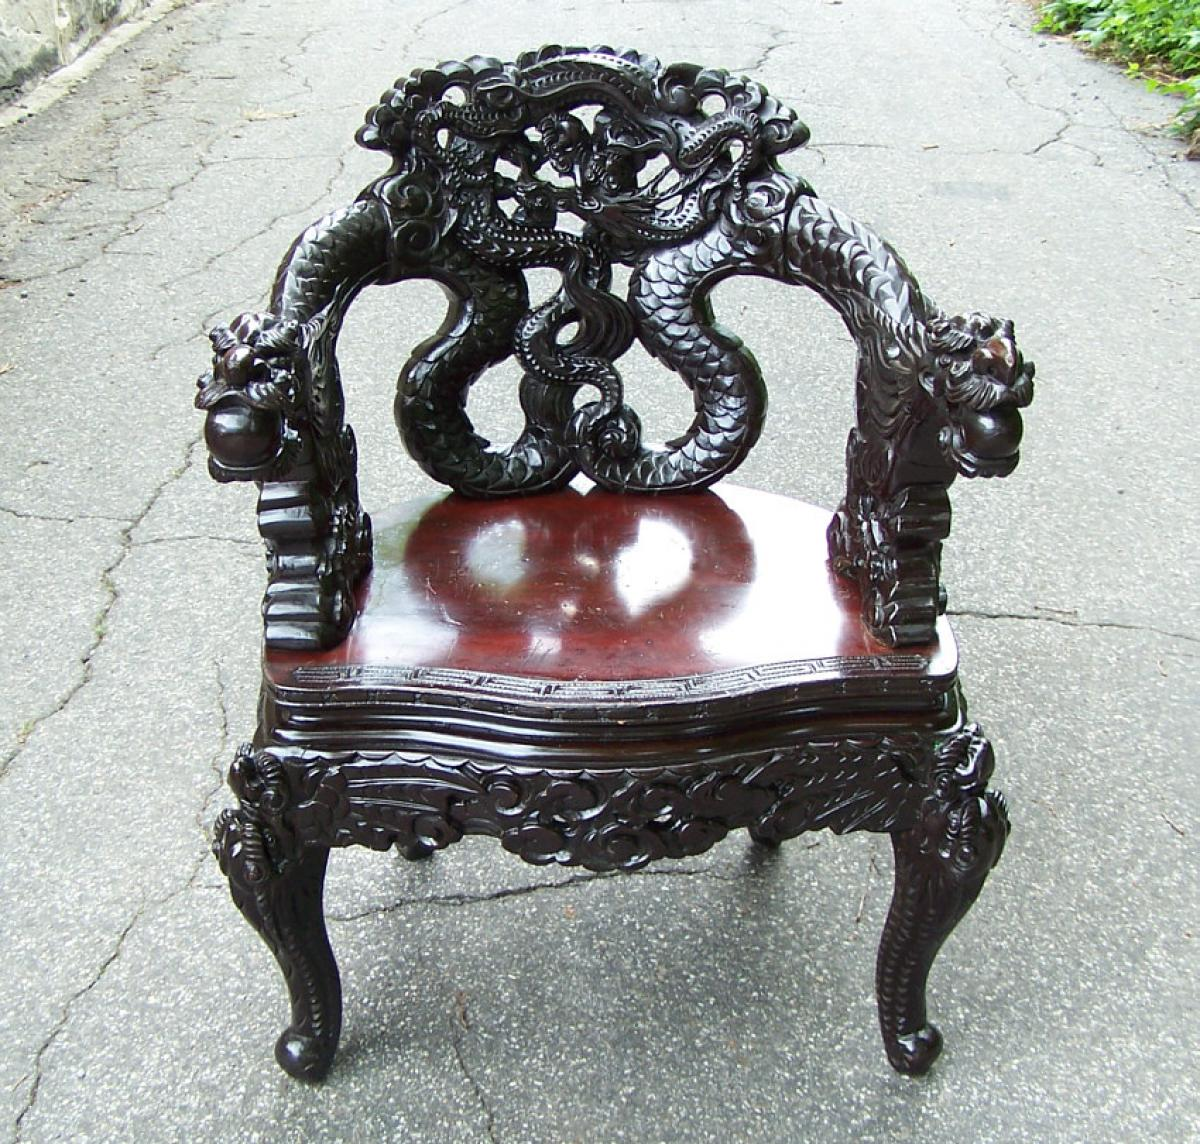 Price My Item Value Of Antique Chinese Dragon Chair C1880 - Antique Chinese Dragon Chair - Best 2000+ Antique Decor Ideas